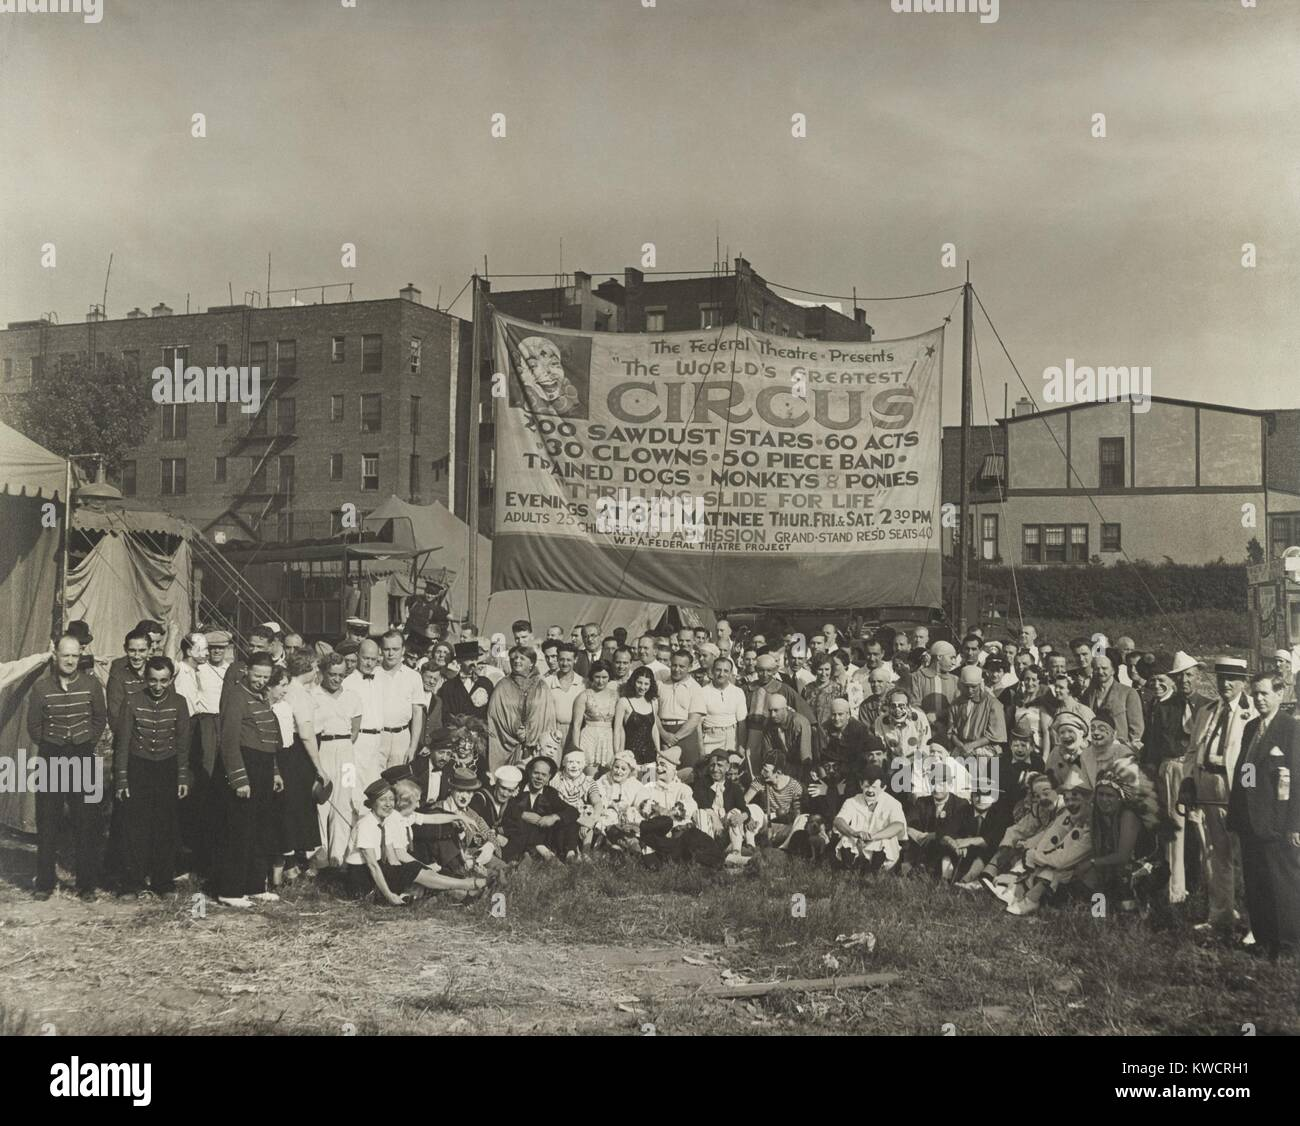 The Federal Theatre presents the world's greatest! The WPA's Federal Theater Project supported this circus - Stock Image